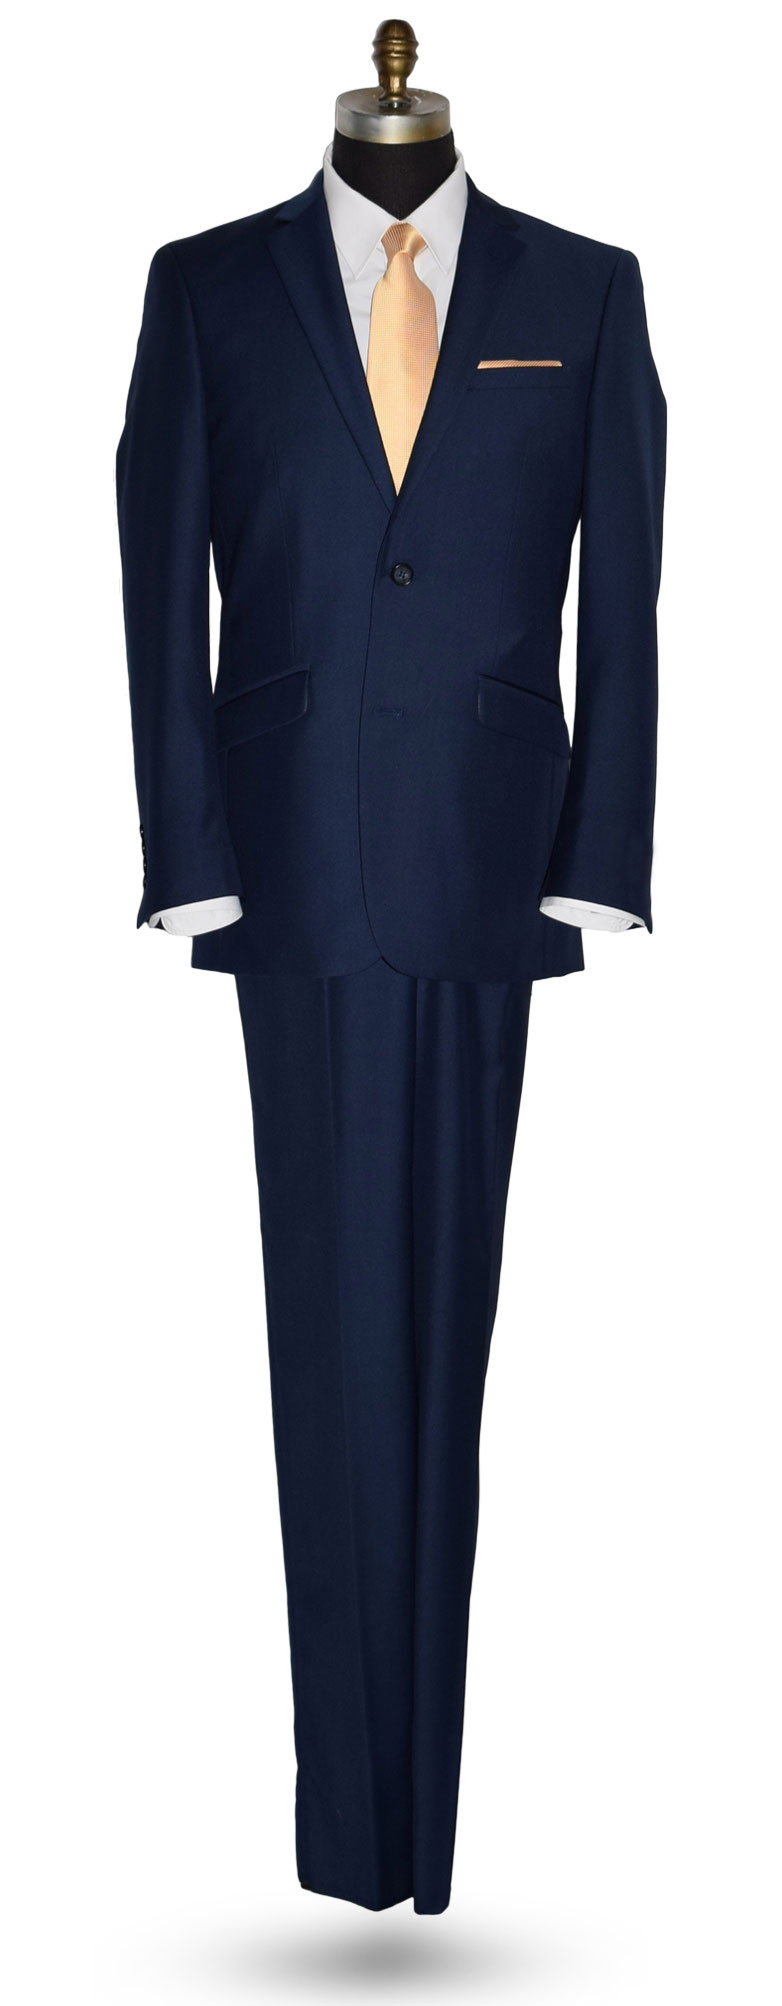 Catalina Blue Suit Coat and Pants Only